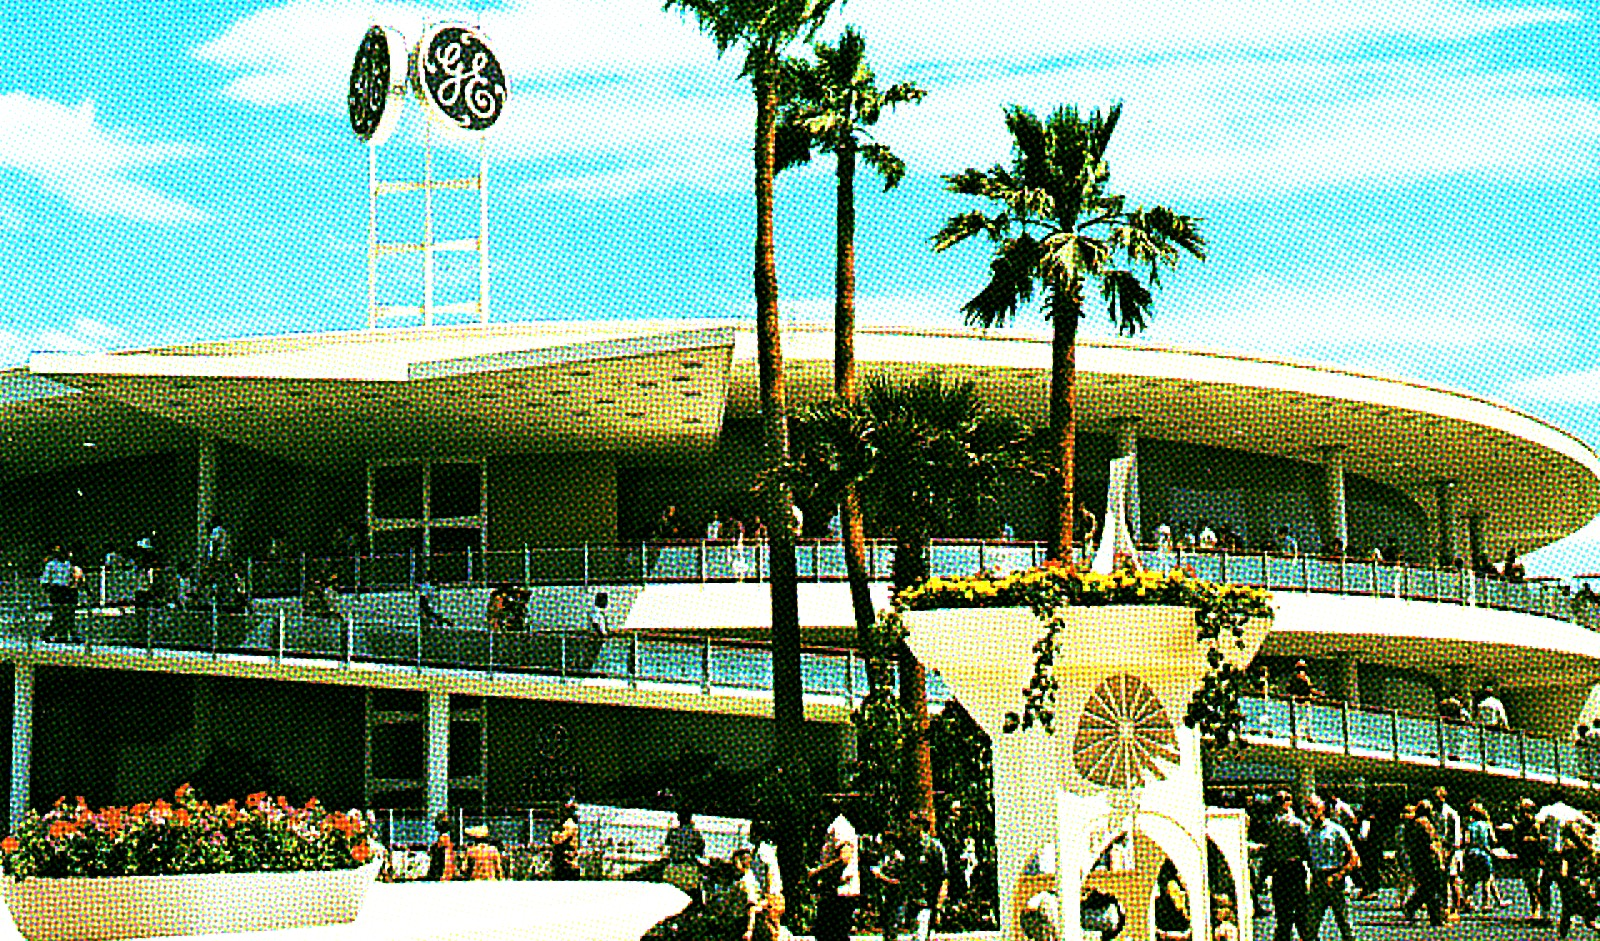 50 years ago, the World's Fair promised a life of leisure. We're still waiting